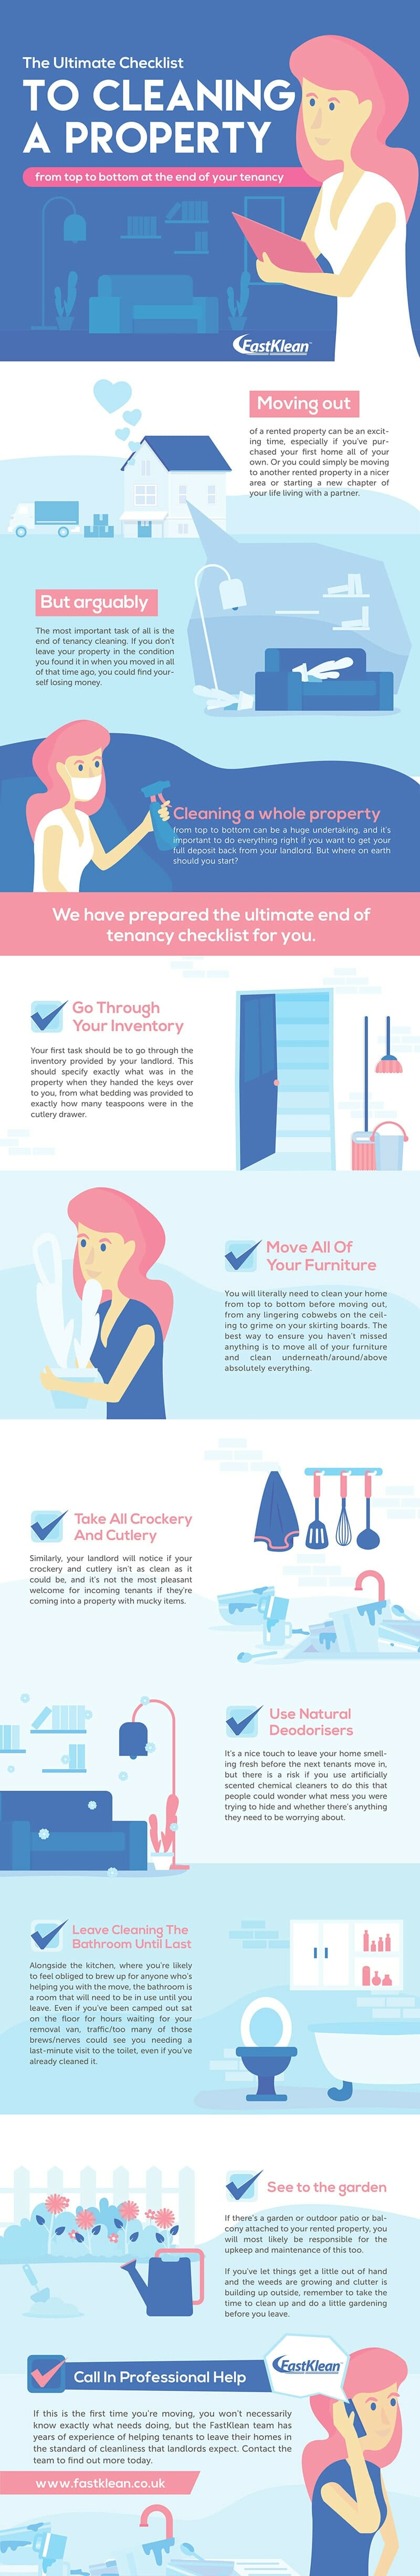 The Ultimate End of Tenancy Checklist + Infographic